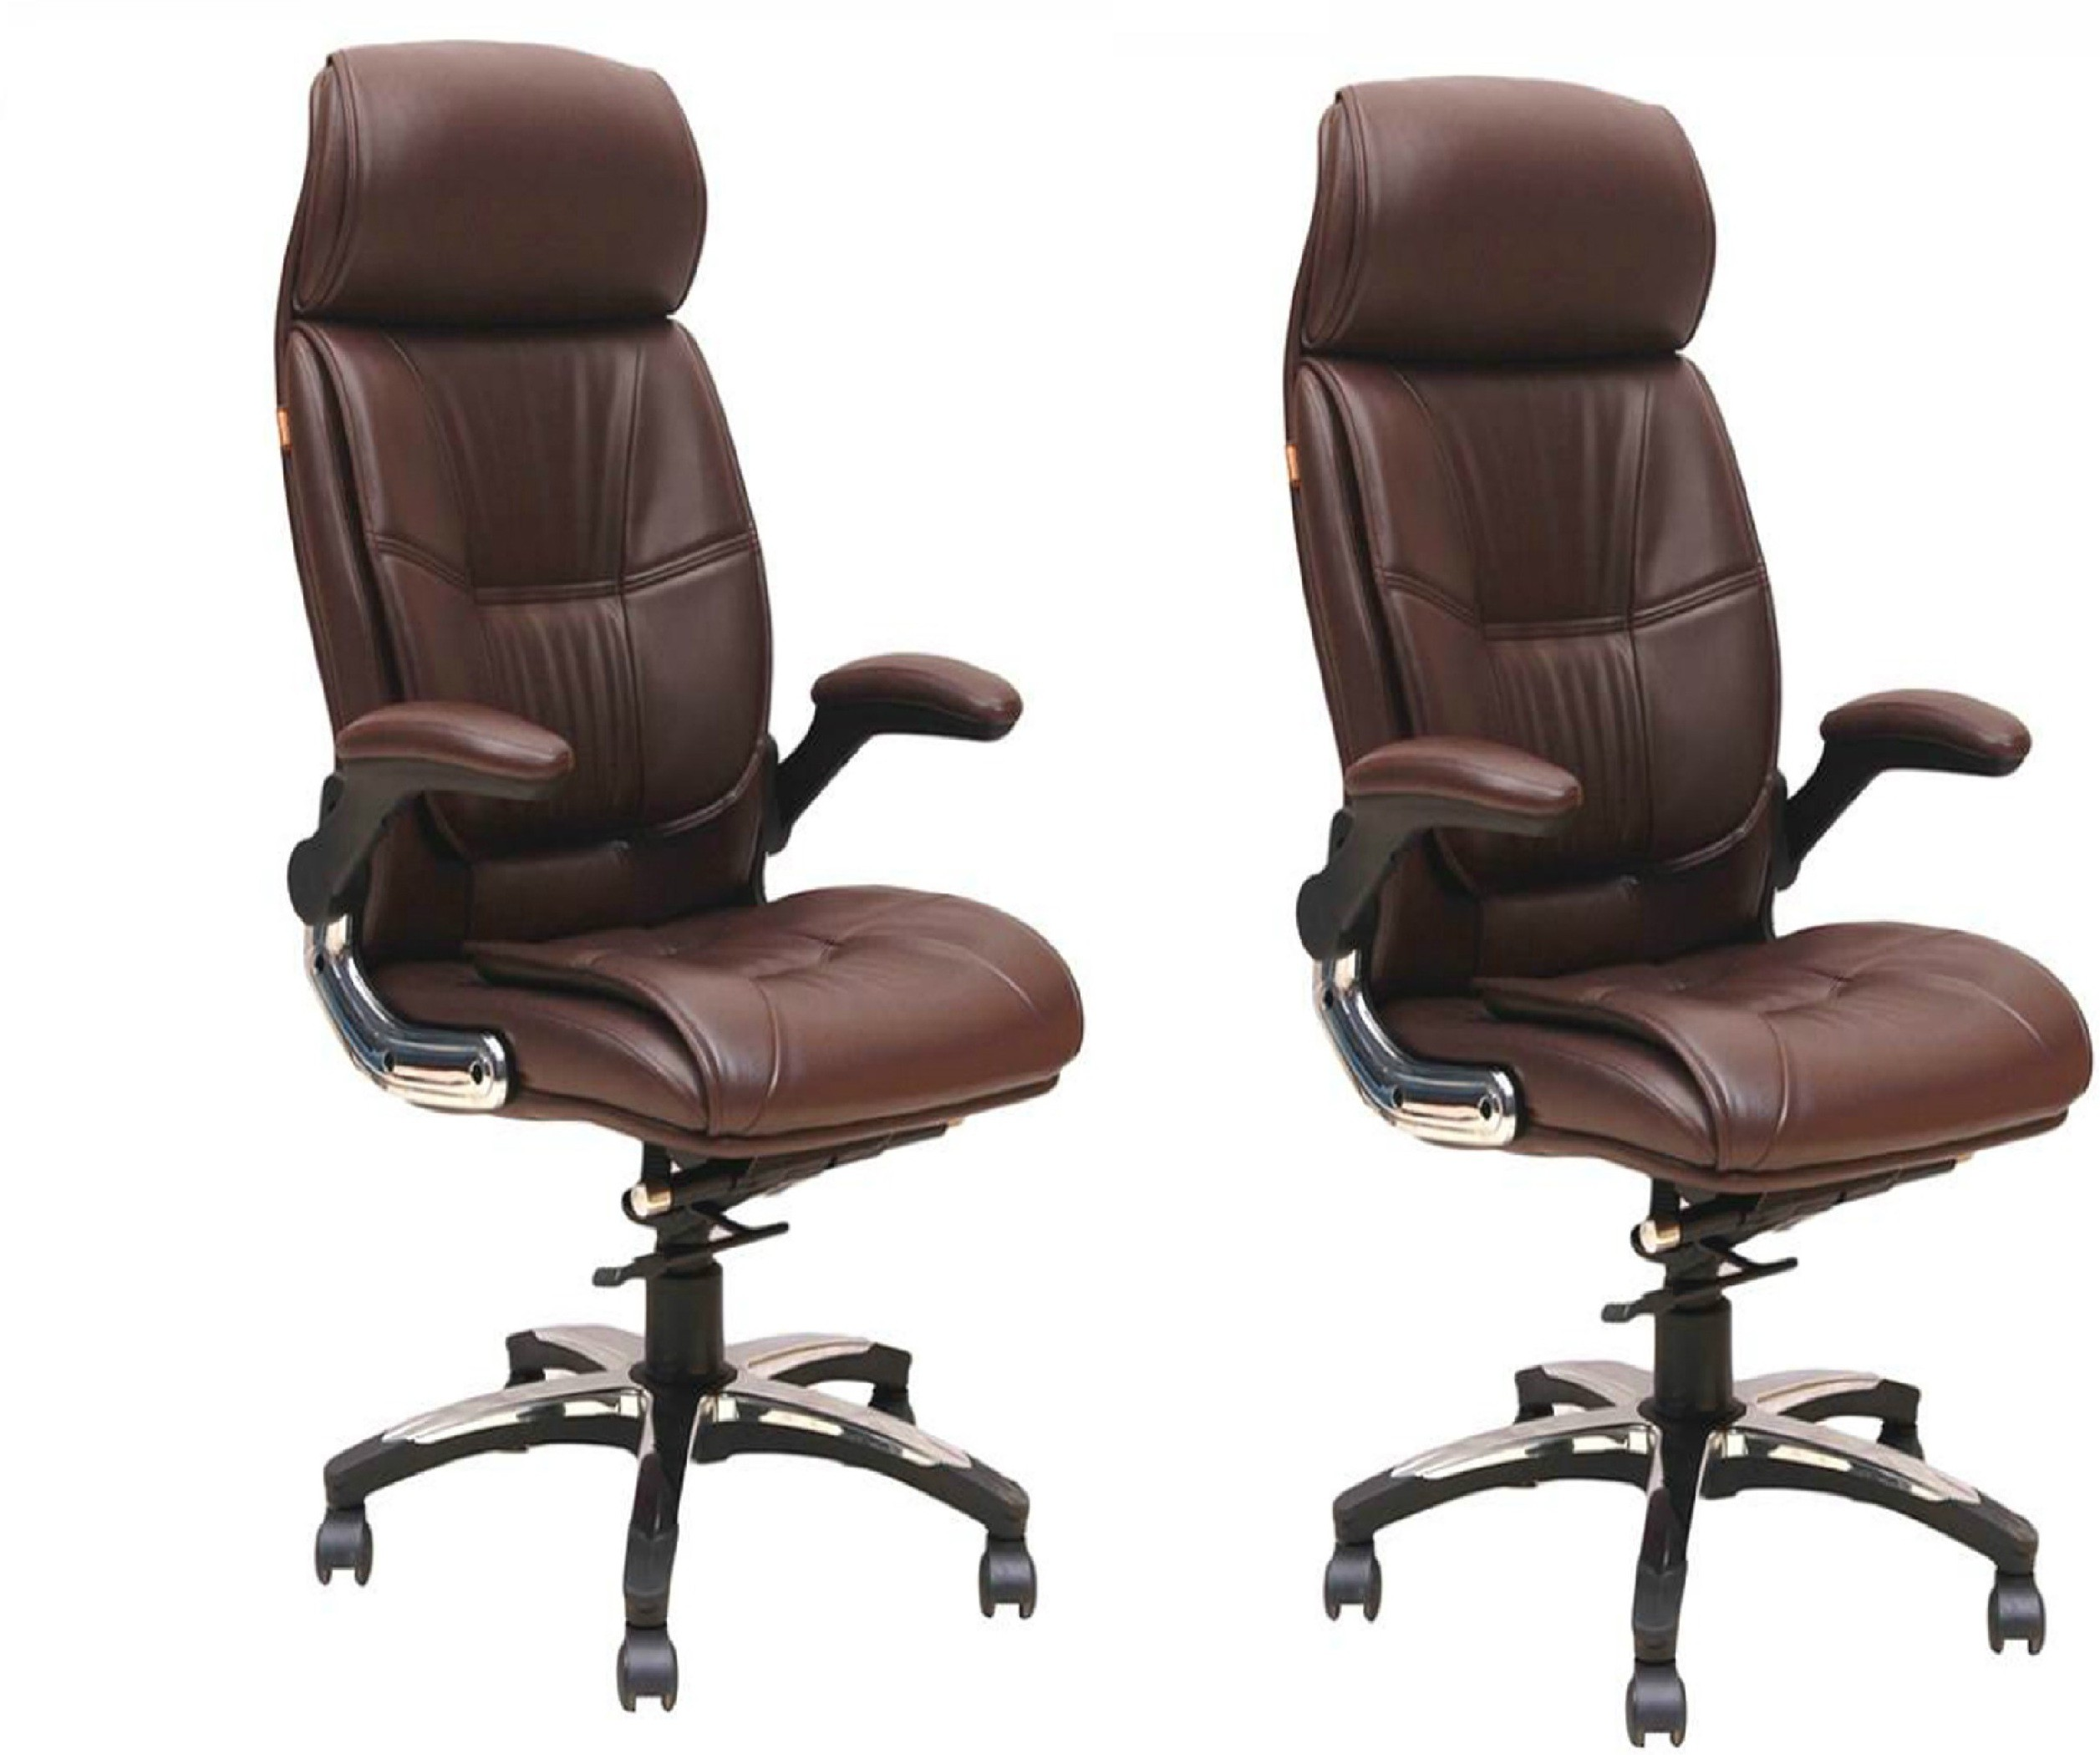 View Woodstock India Lincoln NA Office Chair(Brown, Brown, Set of 2) Furniture (Woodstock India)